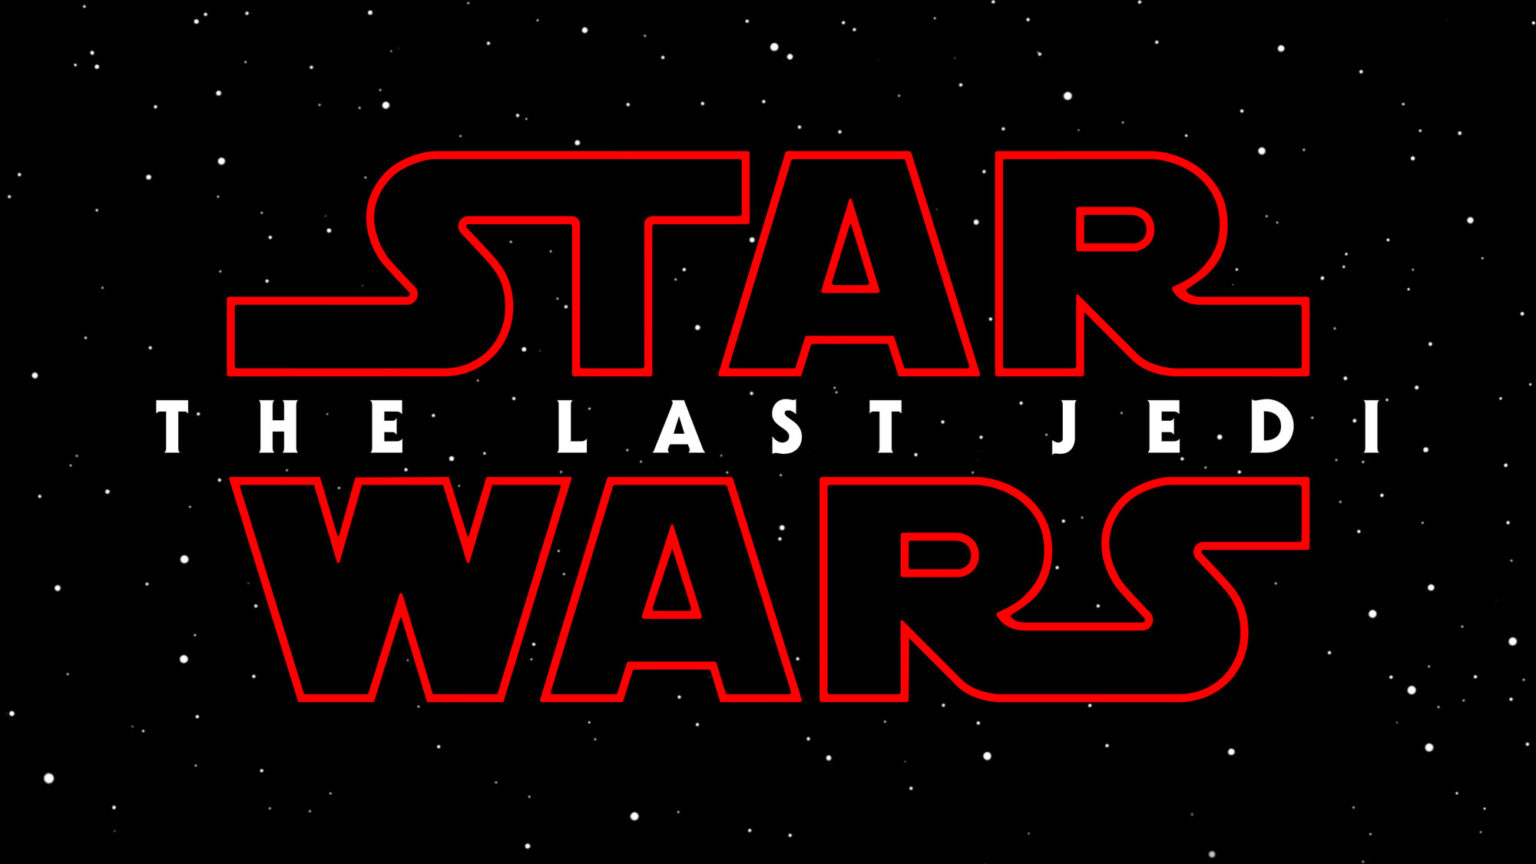 Star Wars Episode VIII: The Last Jedi